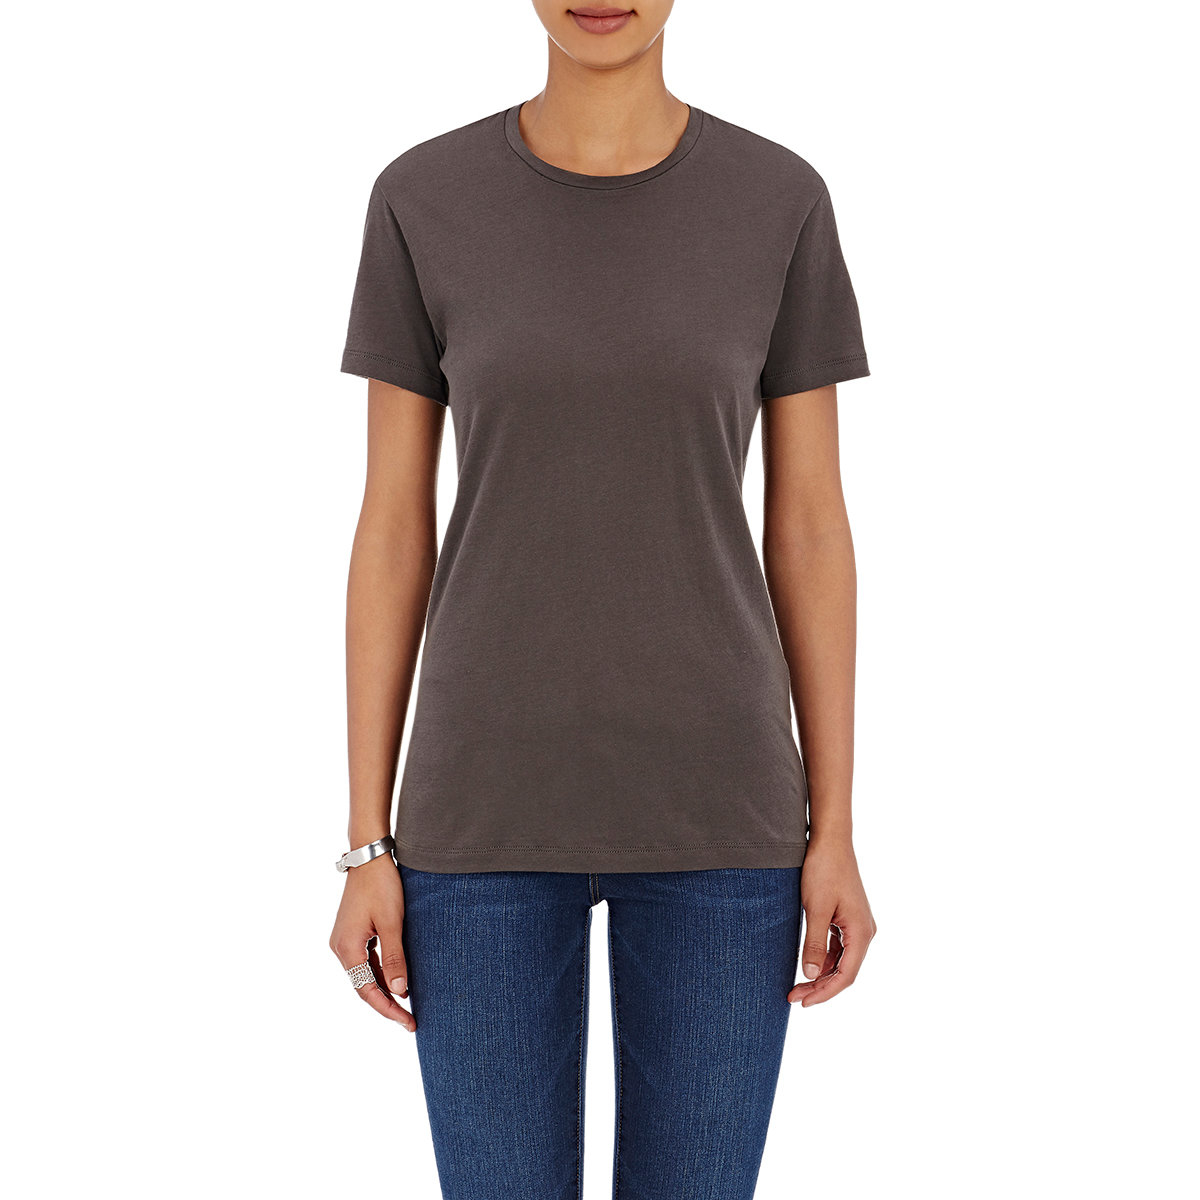 Lyst barneys new york crewneck t in brown for New york and company dress shirts